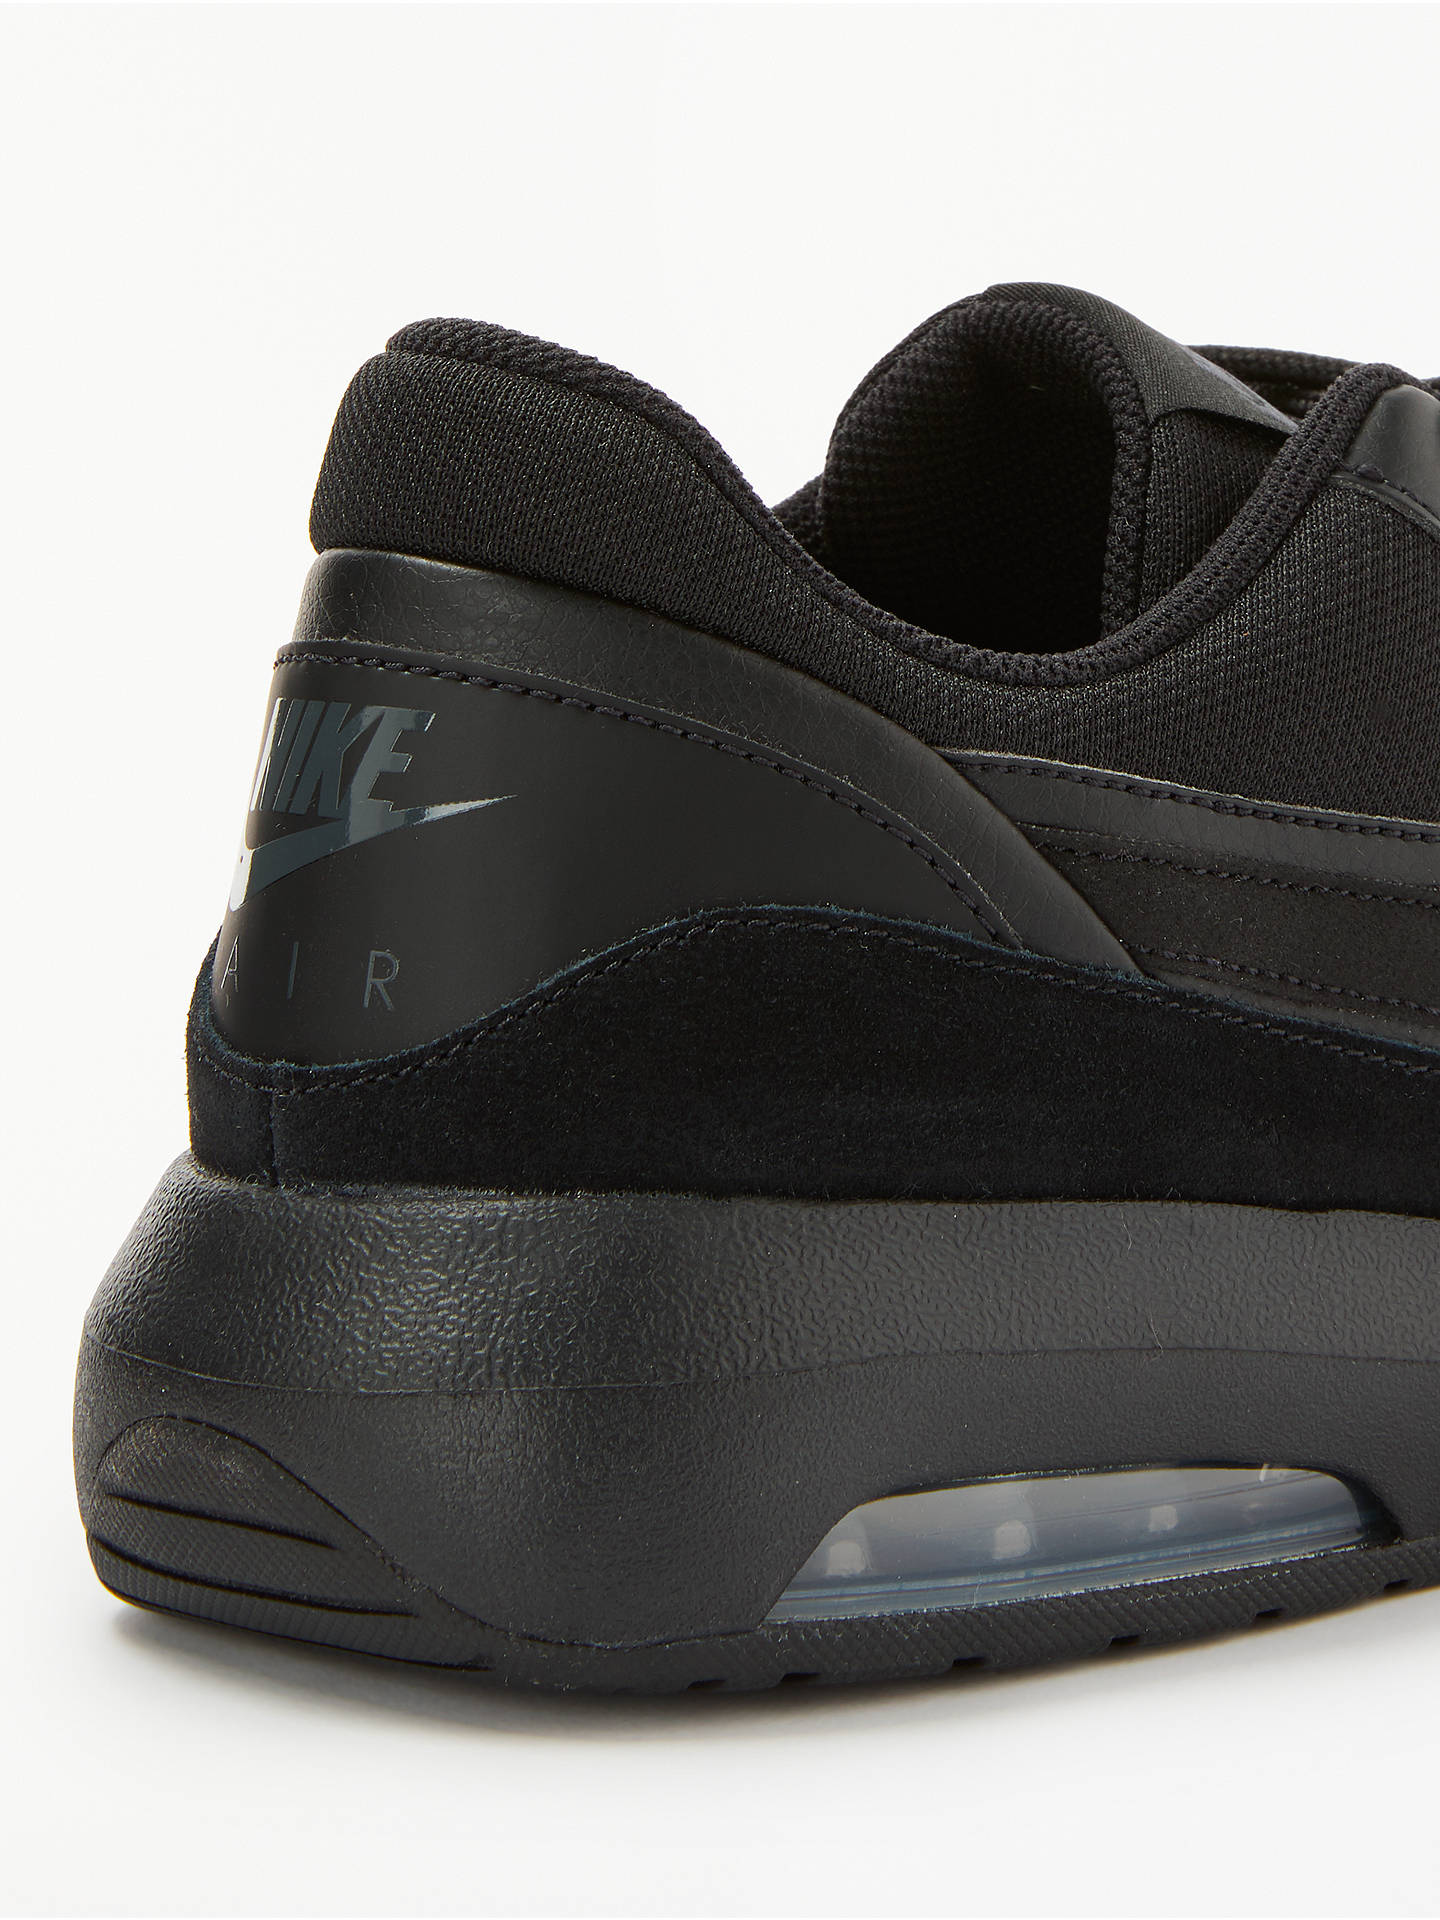 new styles e52b6 cb668 ... Buy Nike Air Max Nostalgic Men's Trainers, Black, 7 Online at  johnlewis. ...